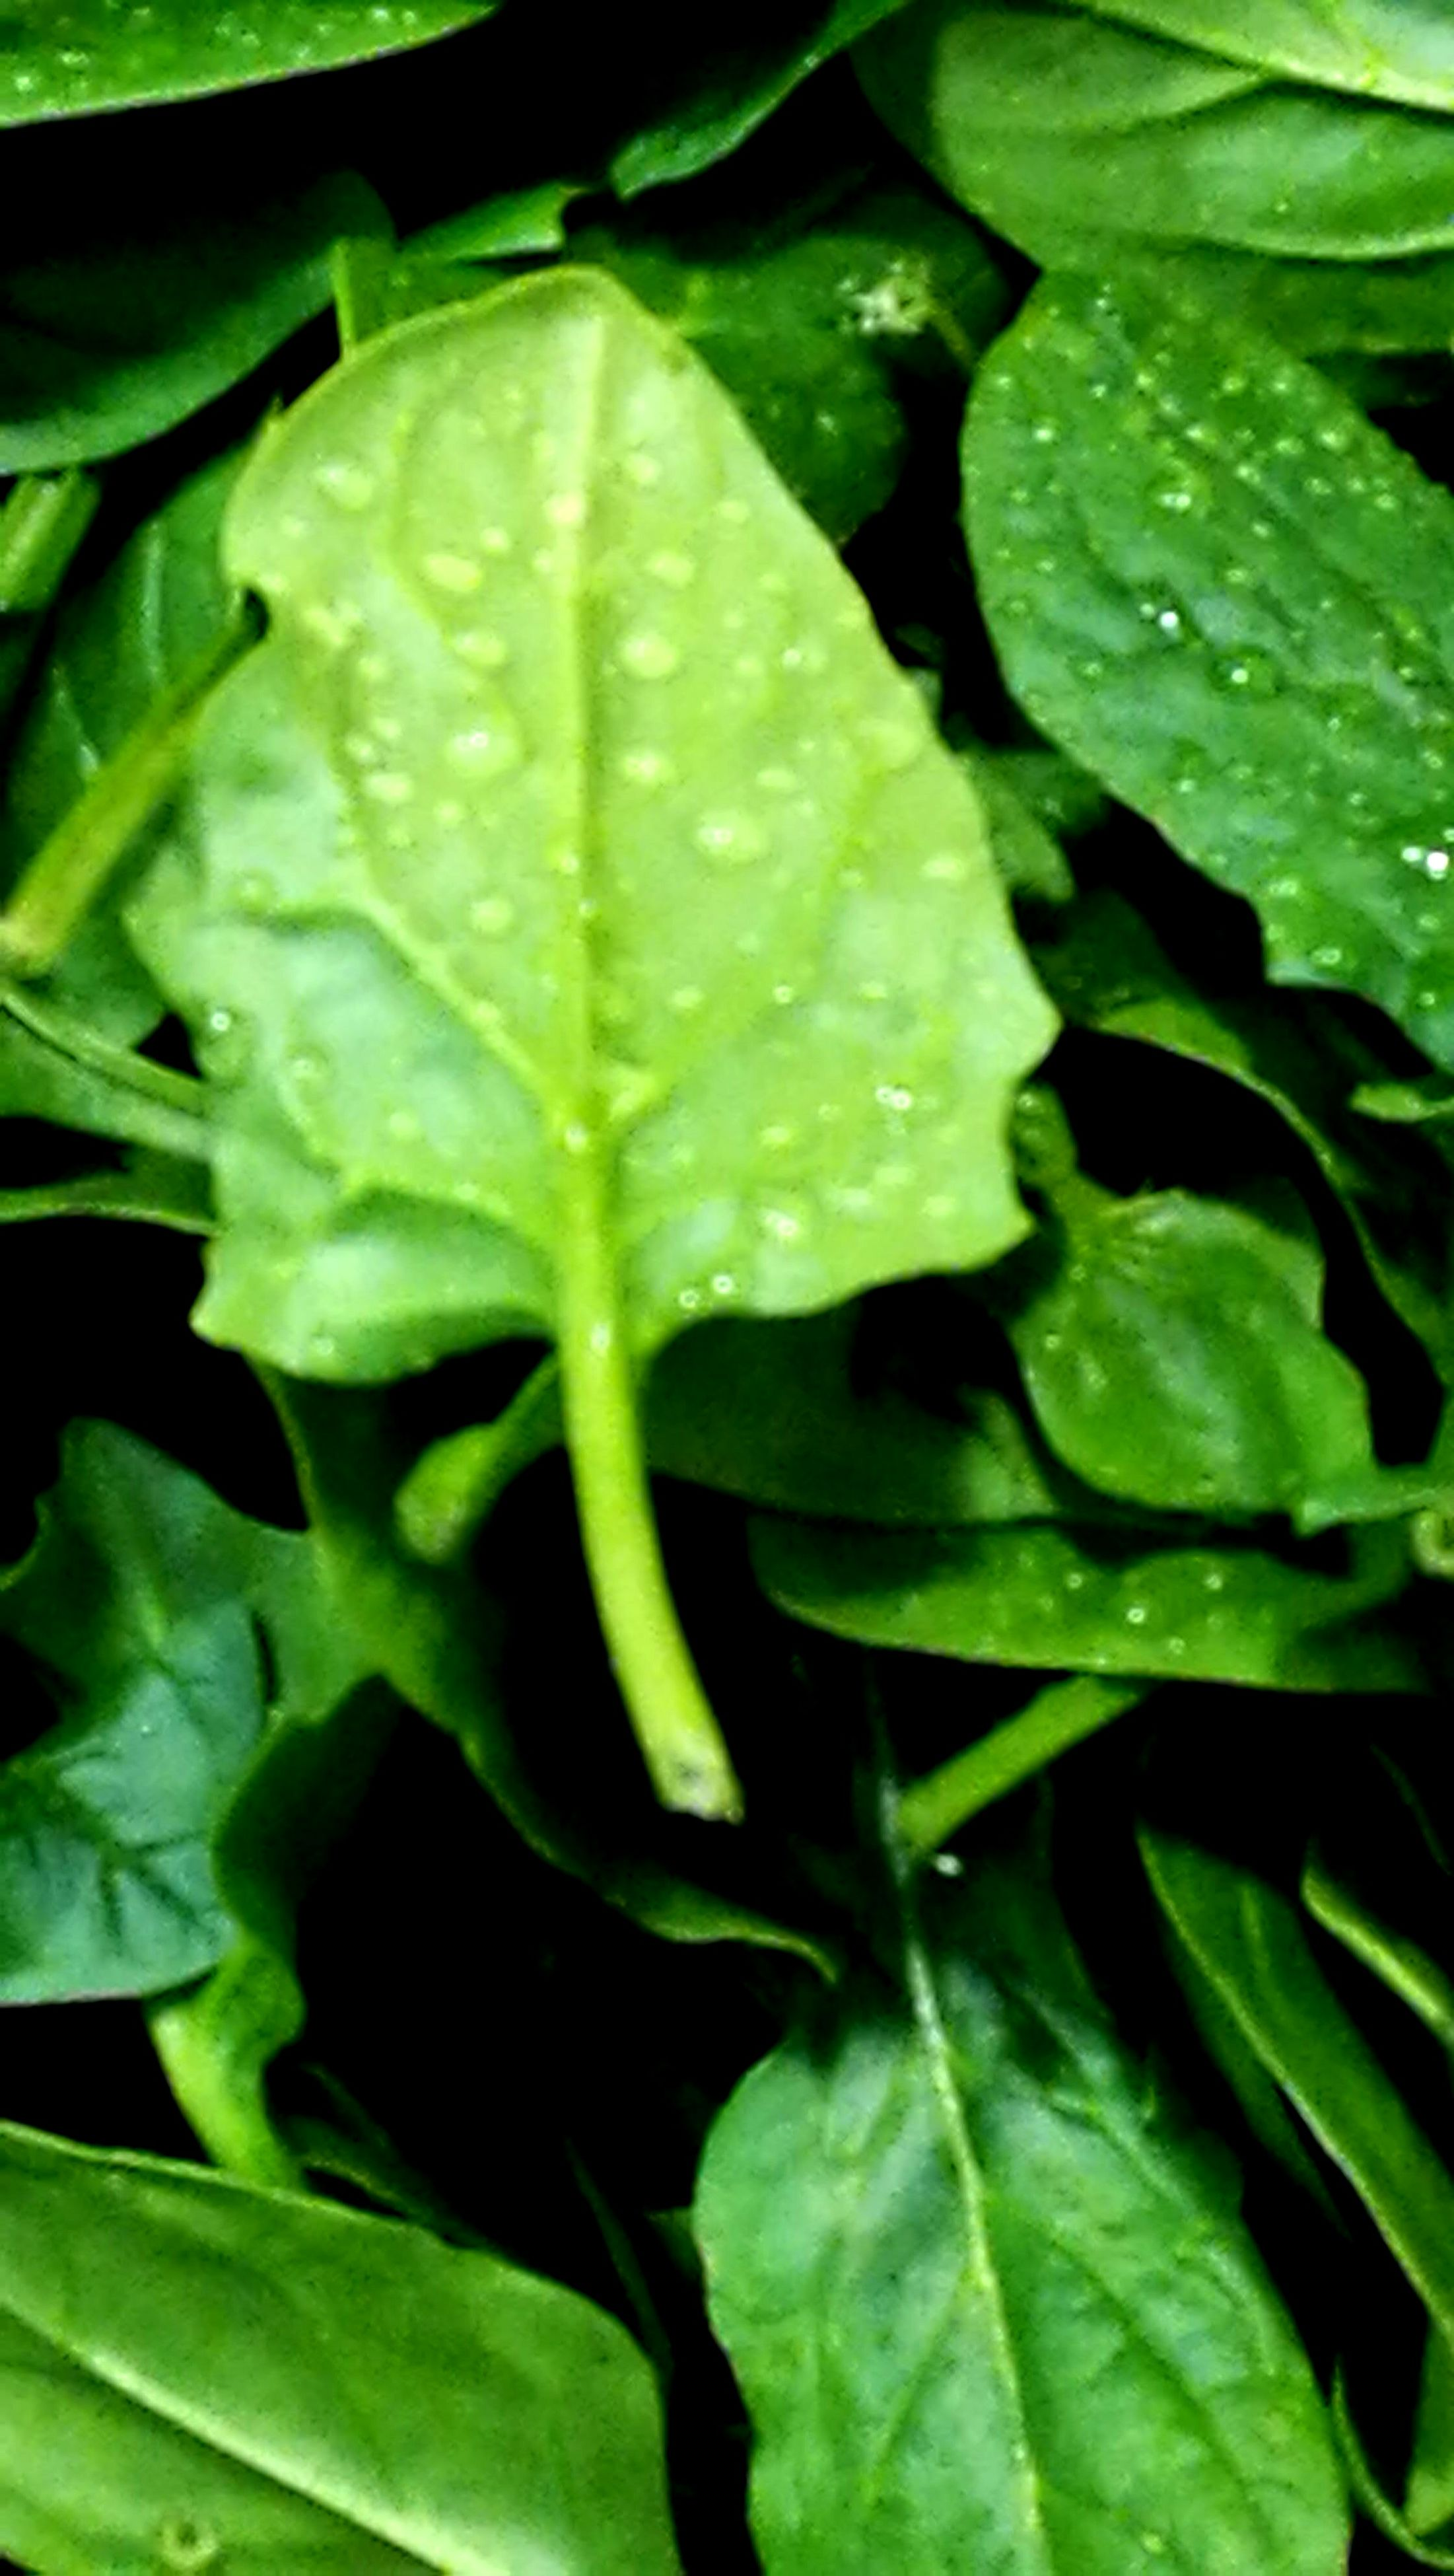 leaf, green color, nature, plant, growth, freshness, no people, close-up, fragility, water, backgrounds, beauty in nature, day, outdoors